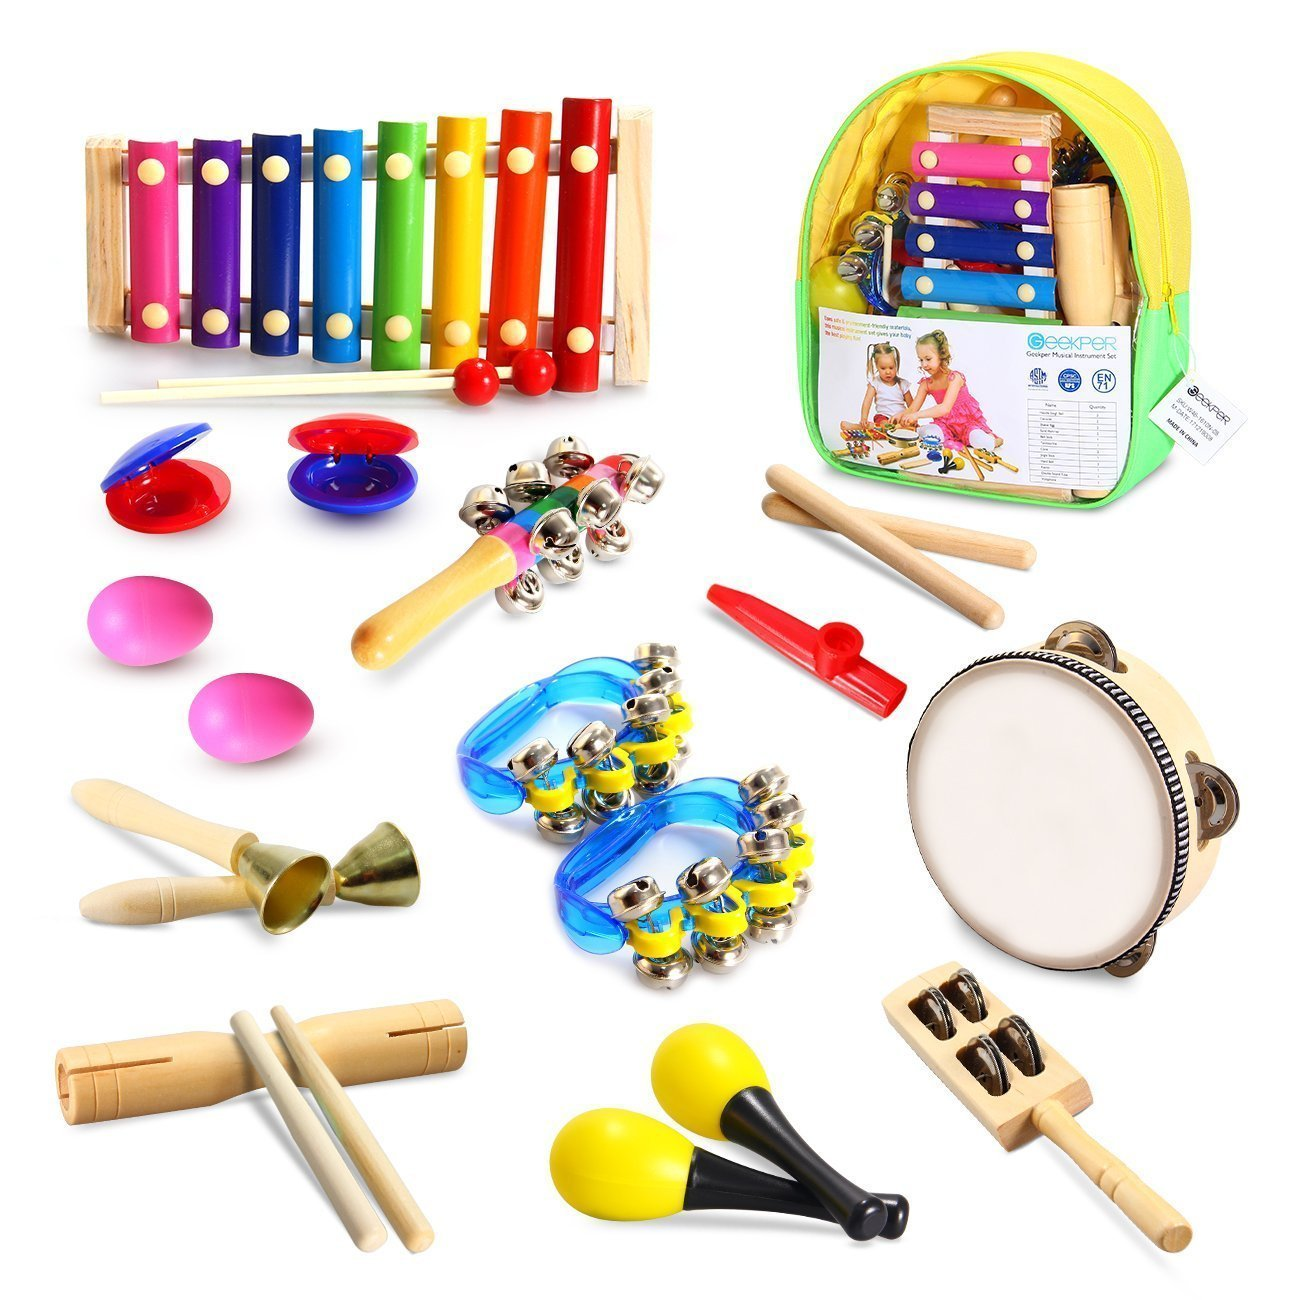 Geekper Kids Musical Instruments, 18 PCS Wooden Percussion Instruments Toy for Baby Kid Child Boys Girls, Tambourine Set Toddler Musical Toys Storage Backpack Included